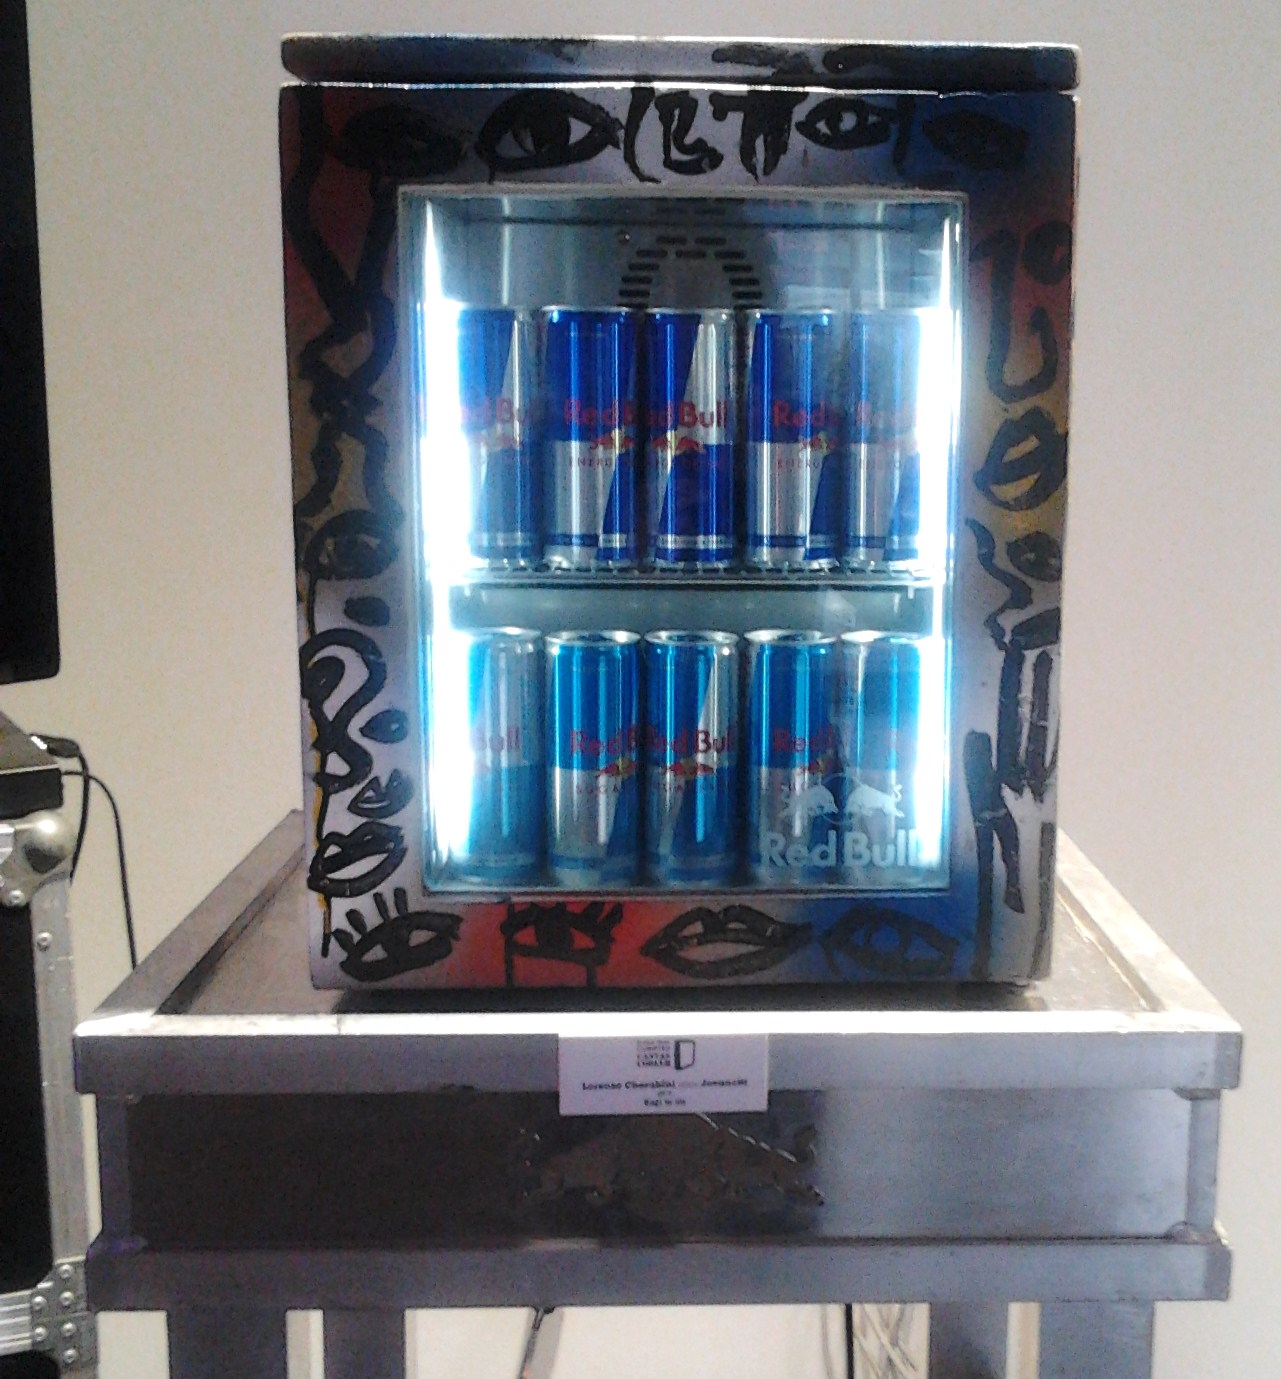 Red Bull Curates Canvas Cooler